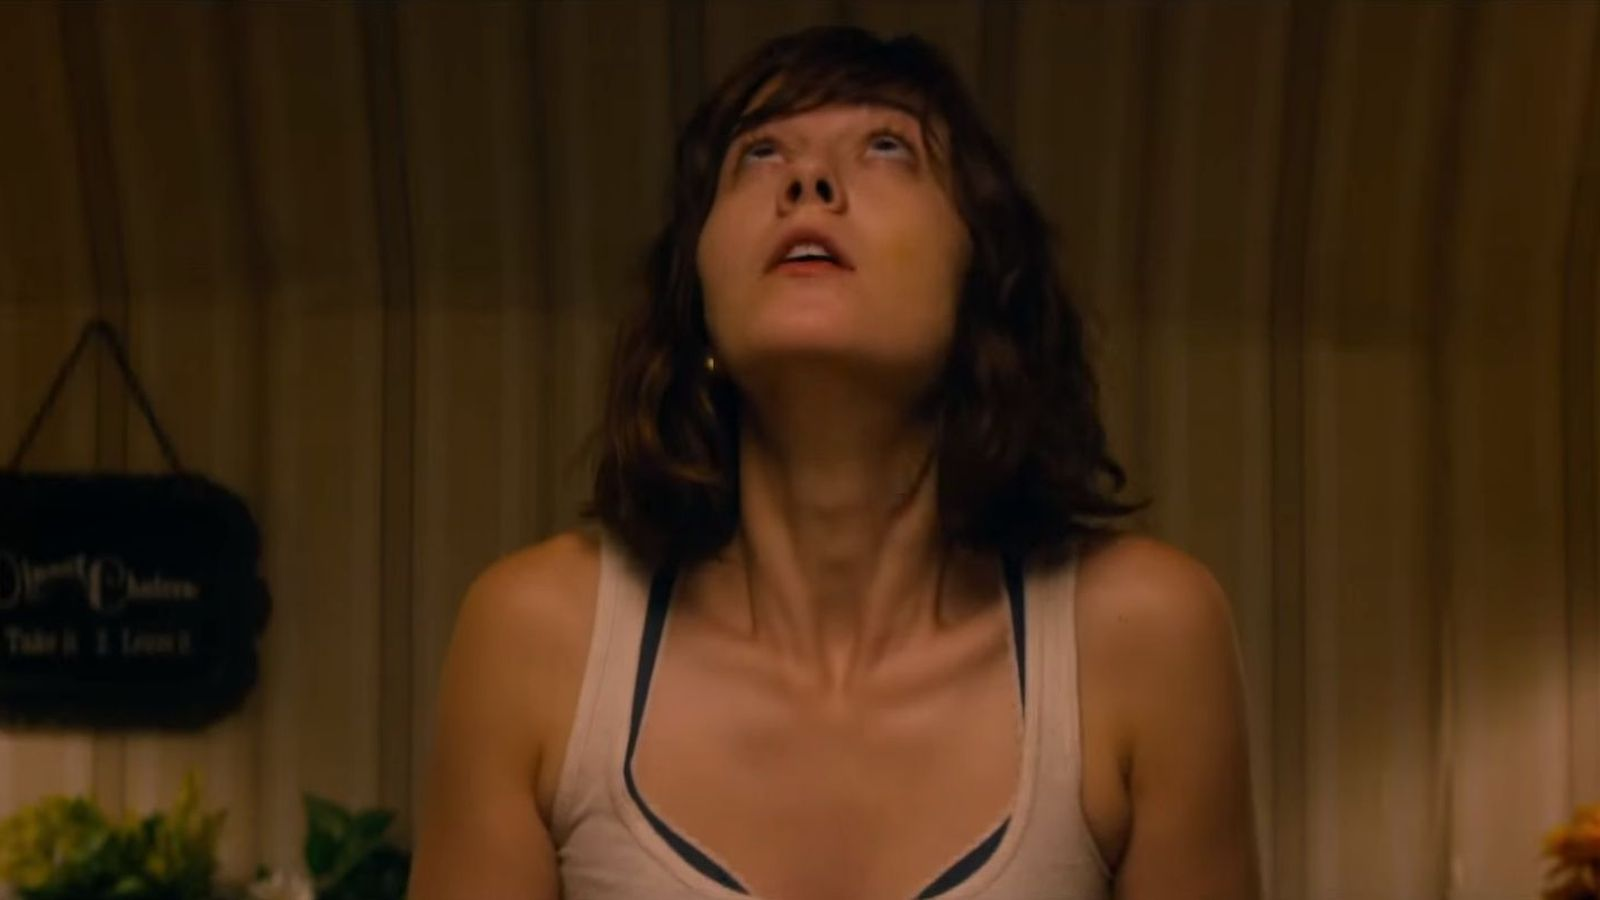 The 10 Cloverfield Lane Backlash Is Missing The Point